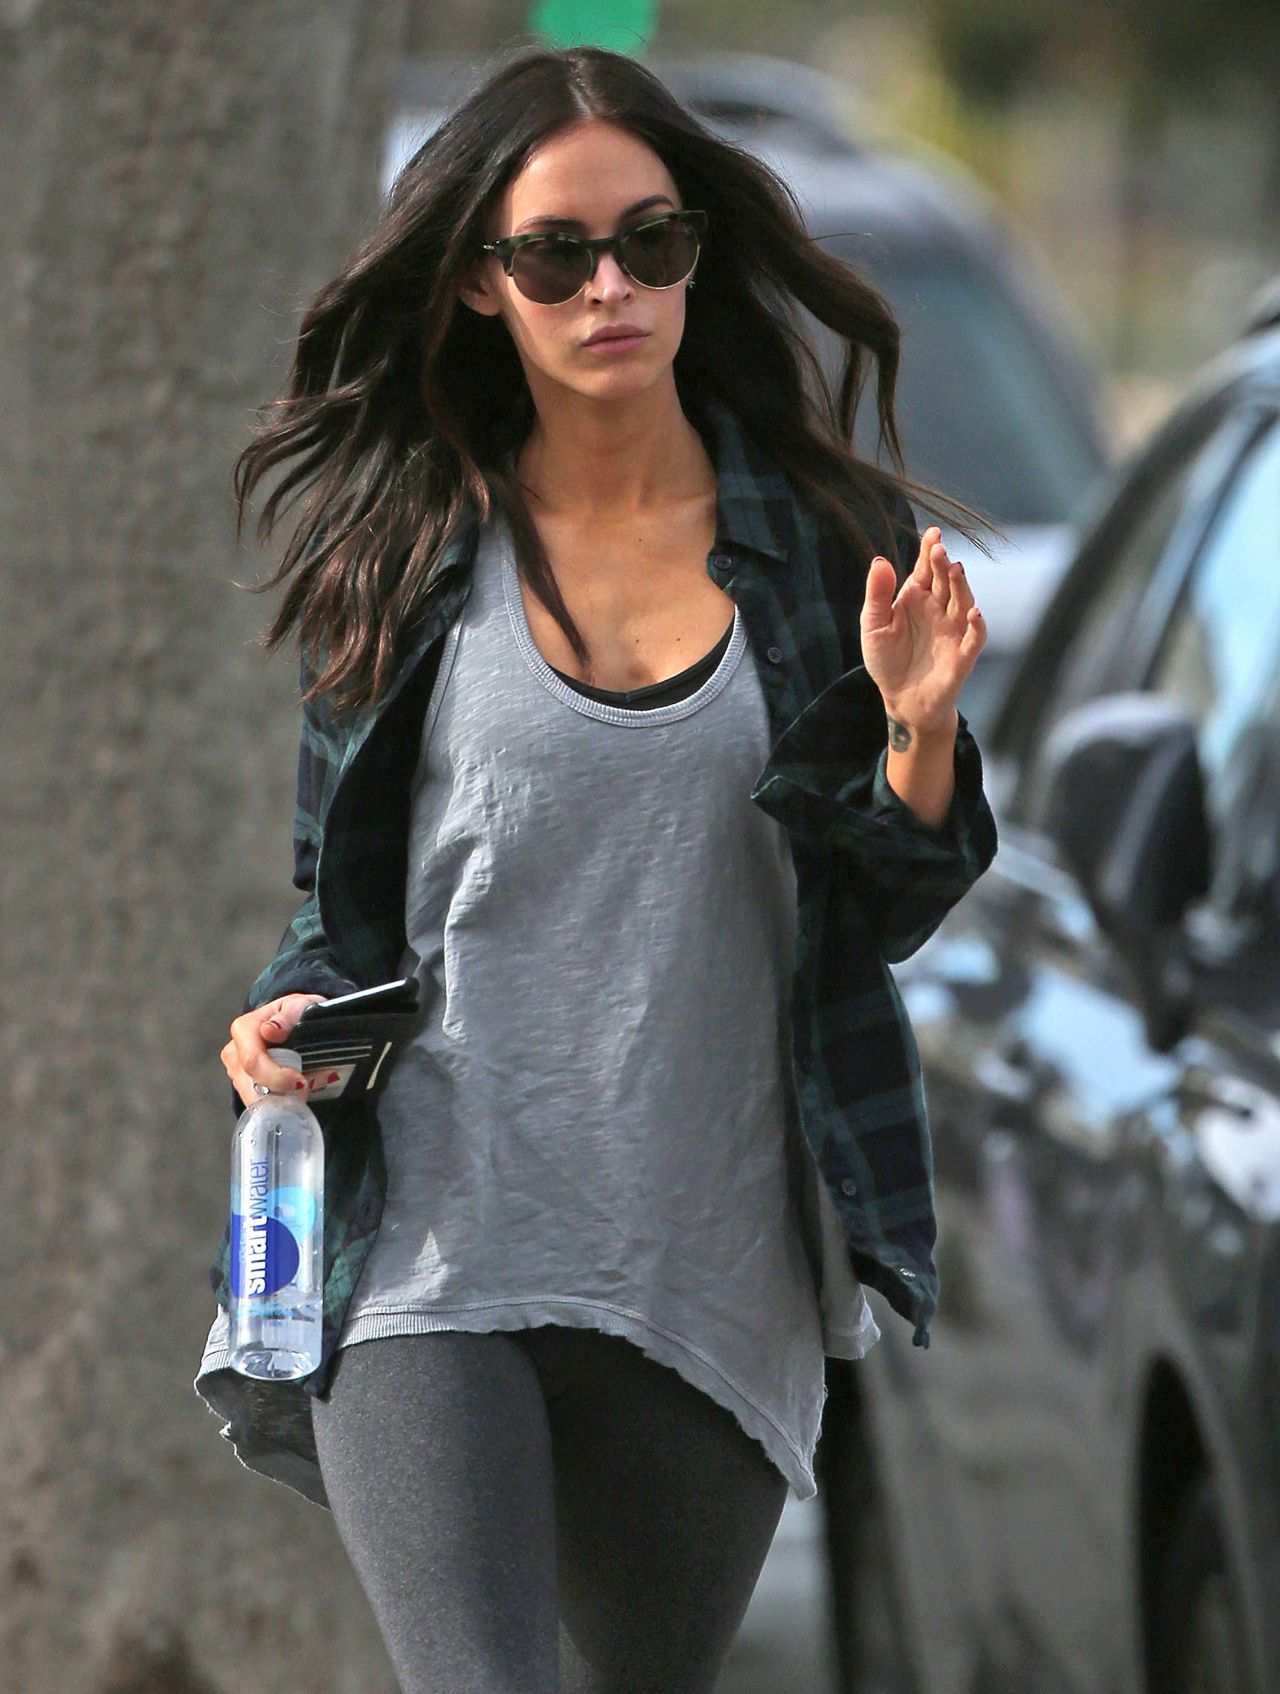 megan fox street style out in los angeles december 2014